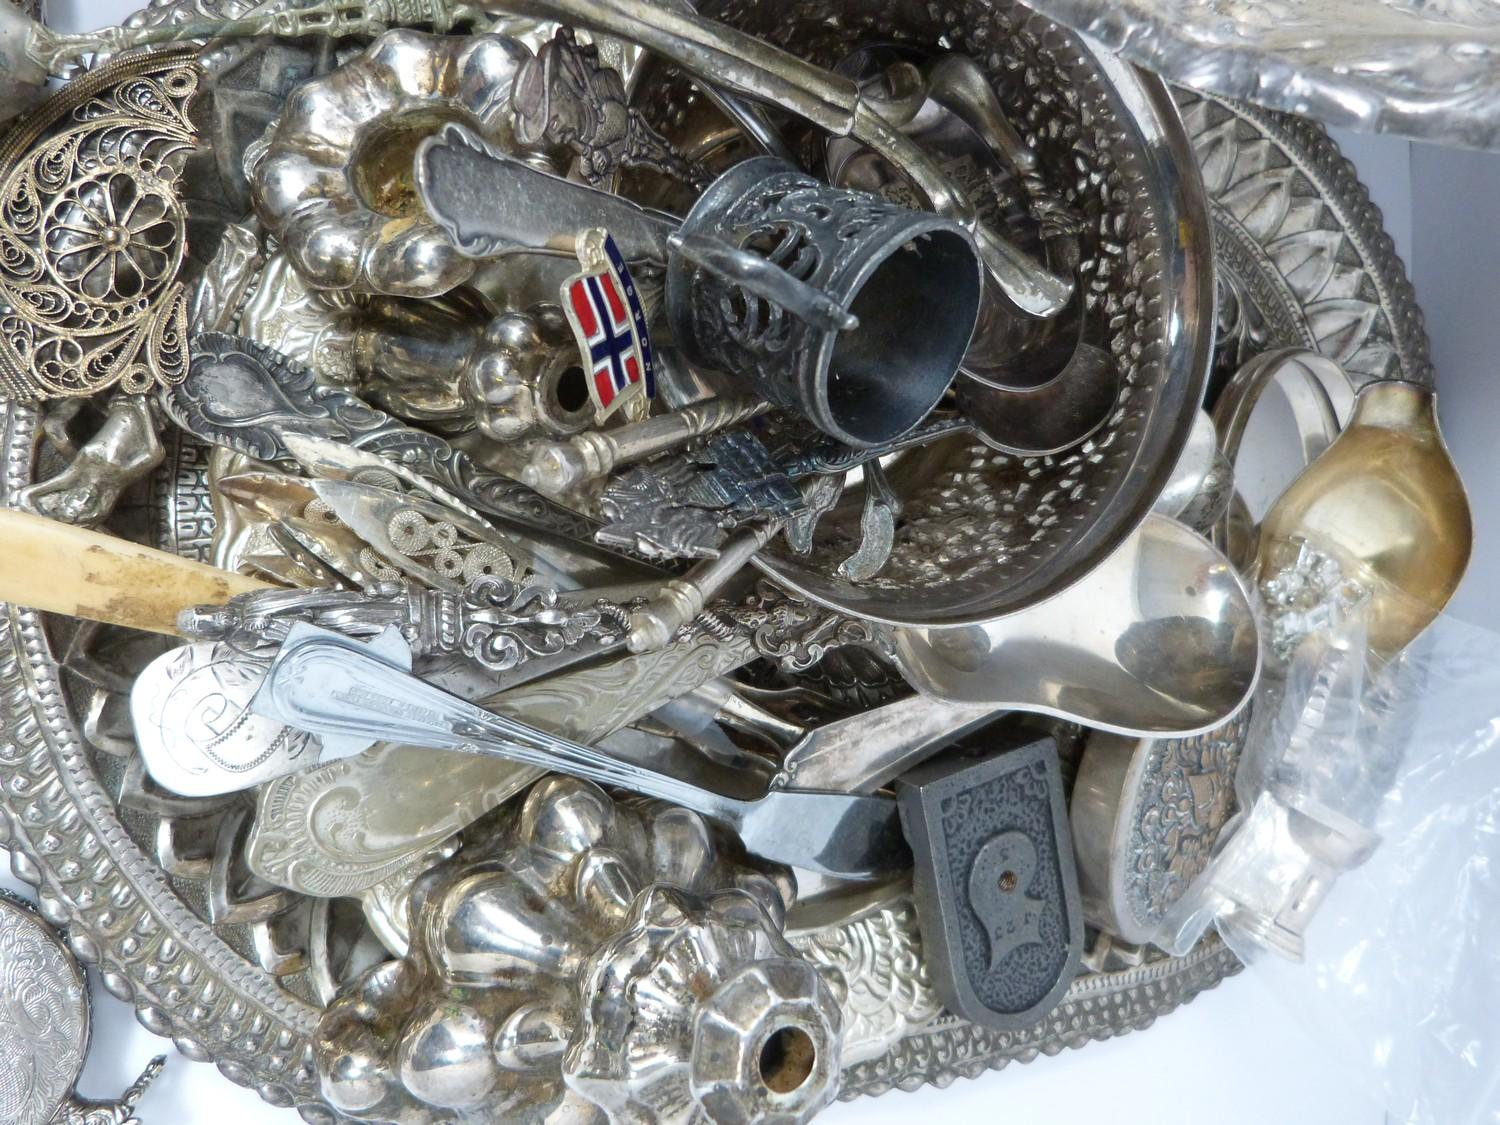 A collection of silver plate and other metalware including, trays, apostle spoons, bowls and cutlery - Image 2 of 5